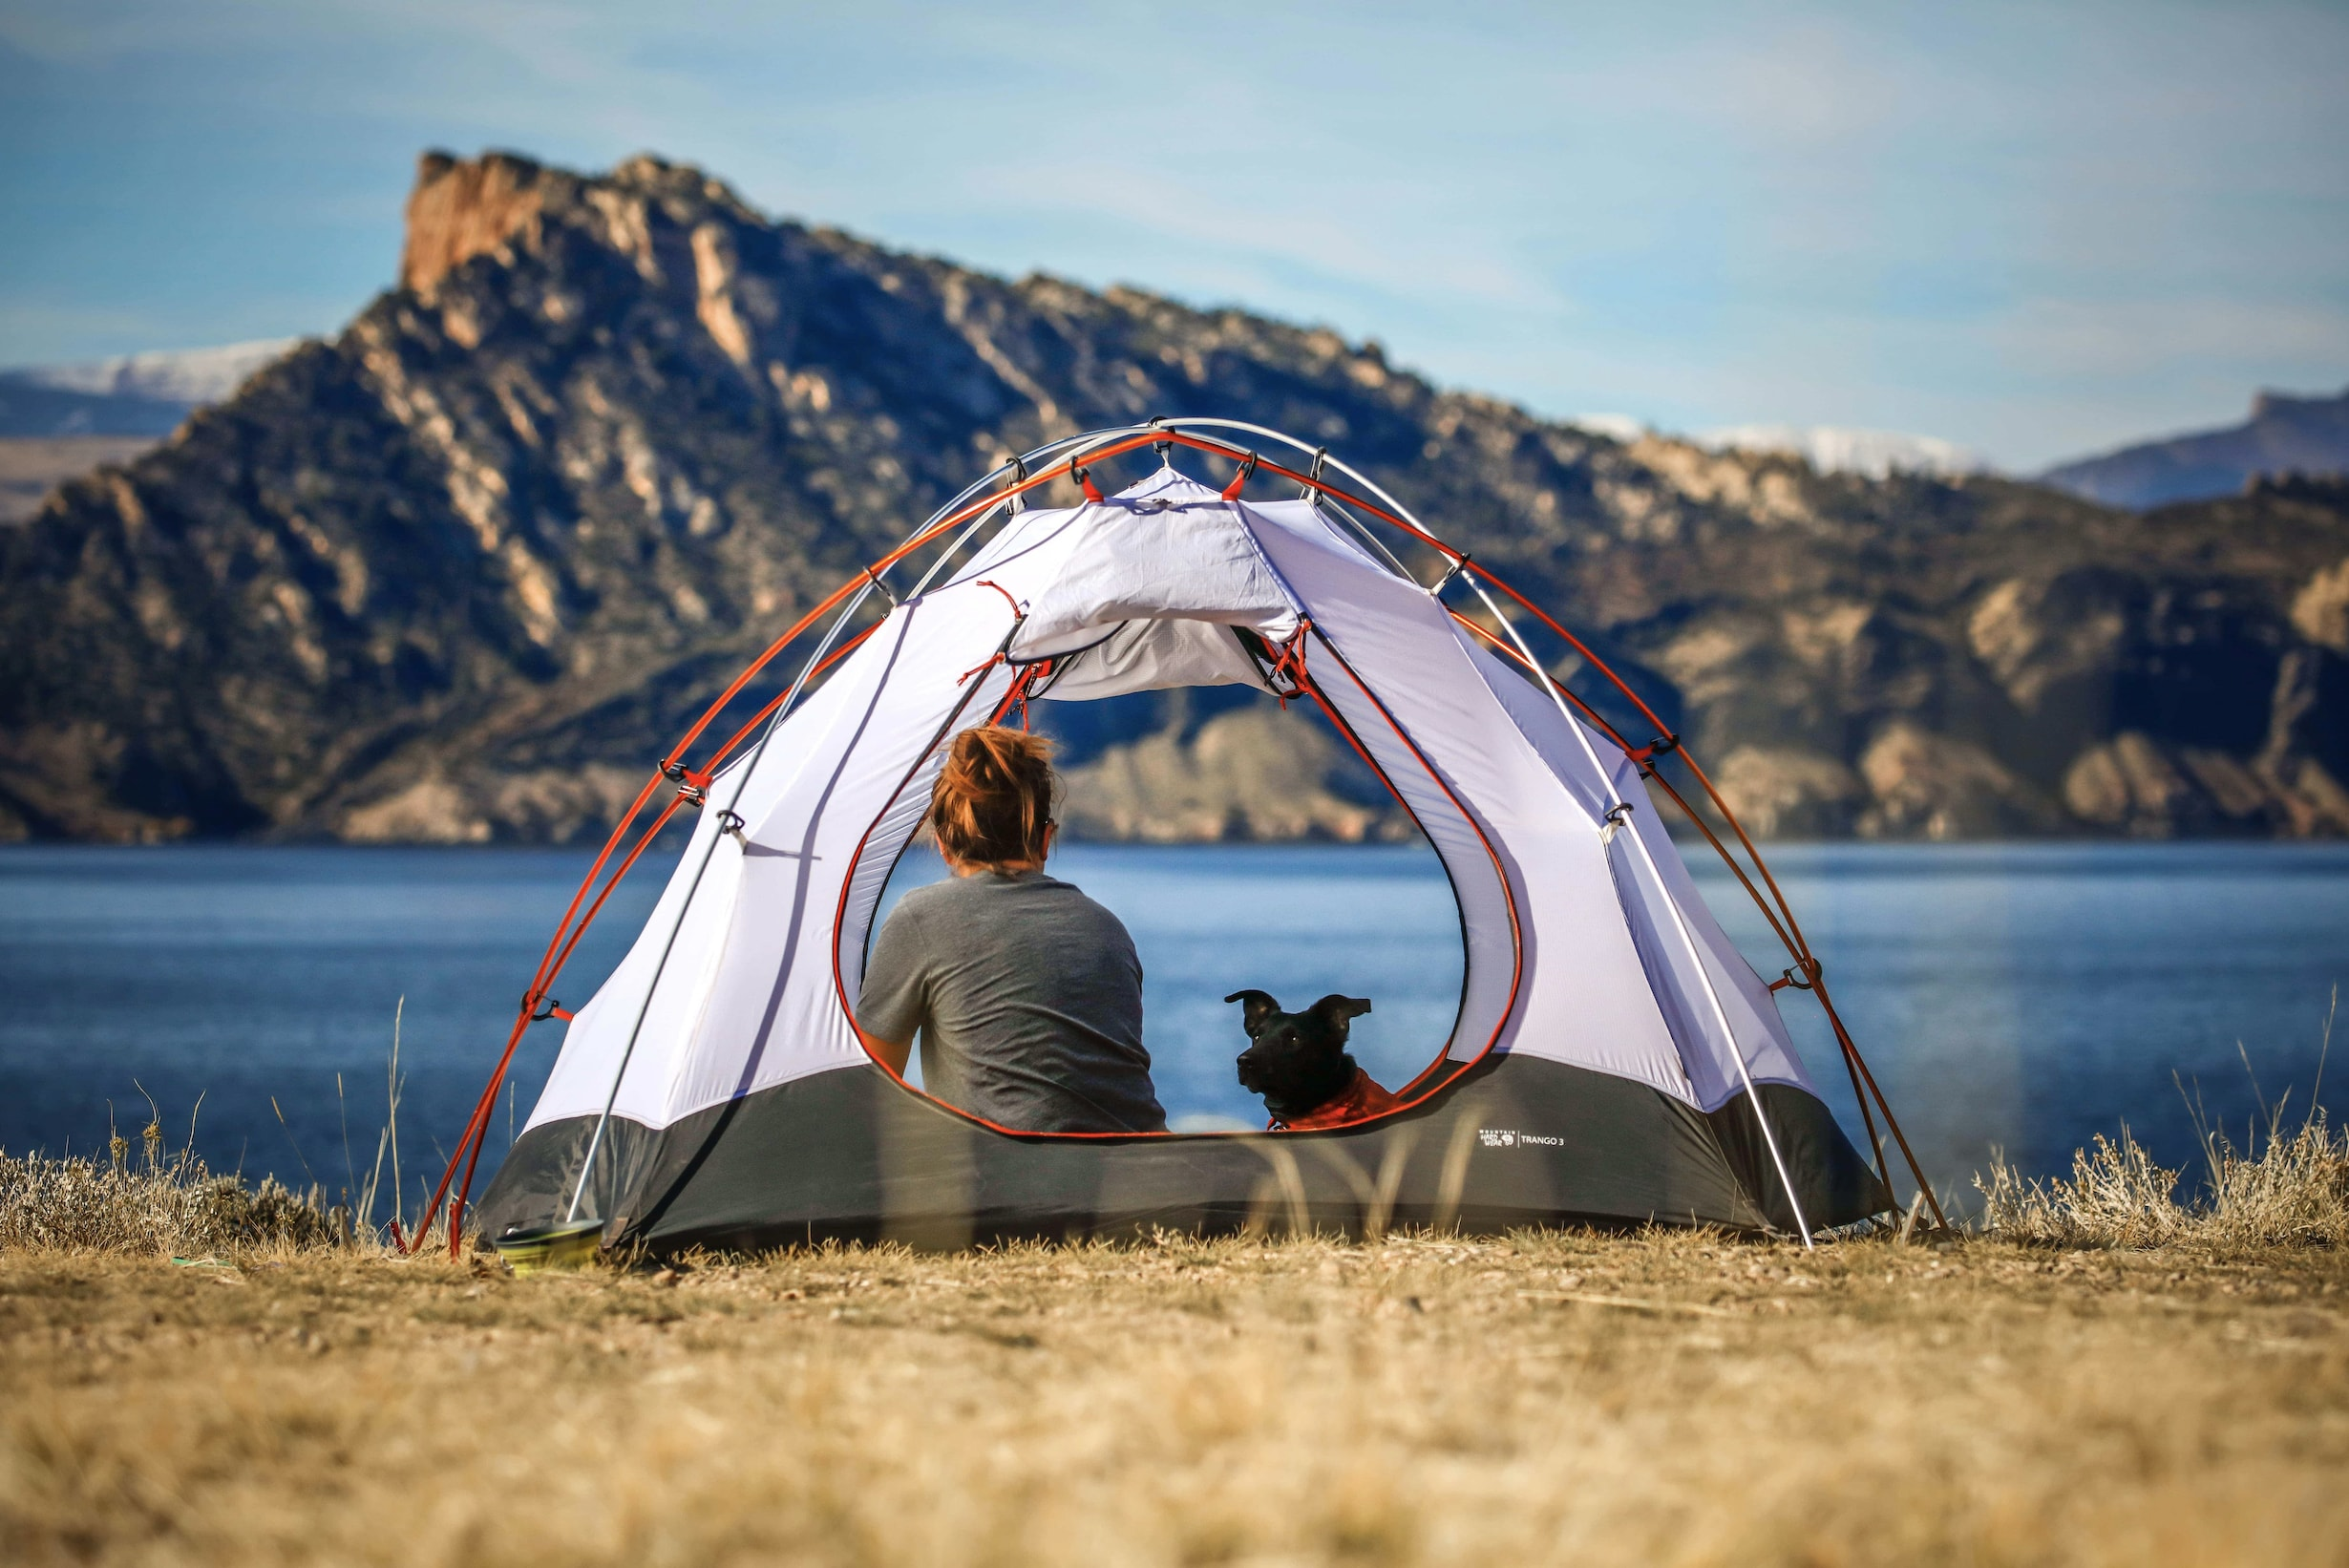 Backpacking Tent: Must-Have for Camping and Hiking